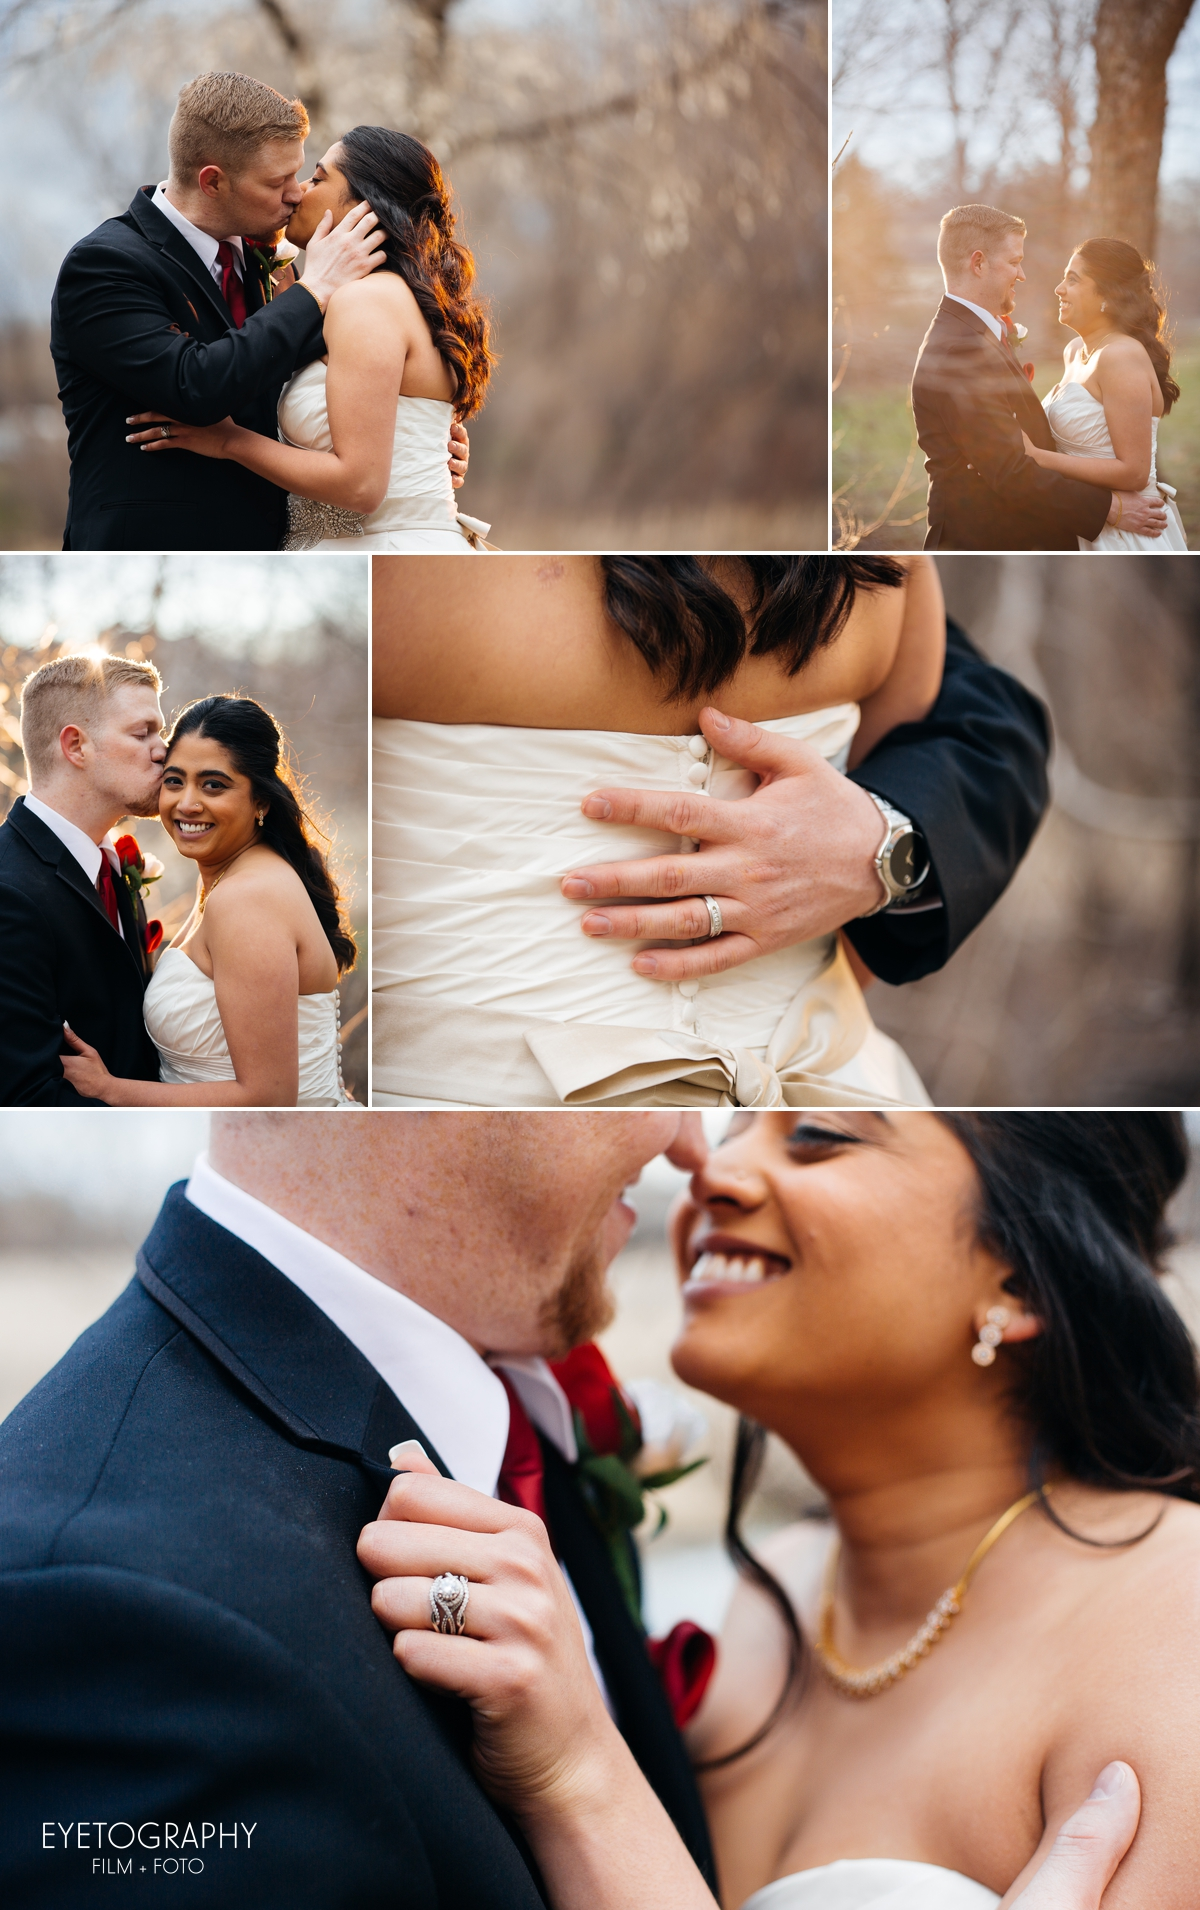 Minneapolis Crowne Plaza Wedding Photography | Justin + Kanaka | Eyetography Film + Foto 11